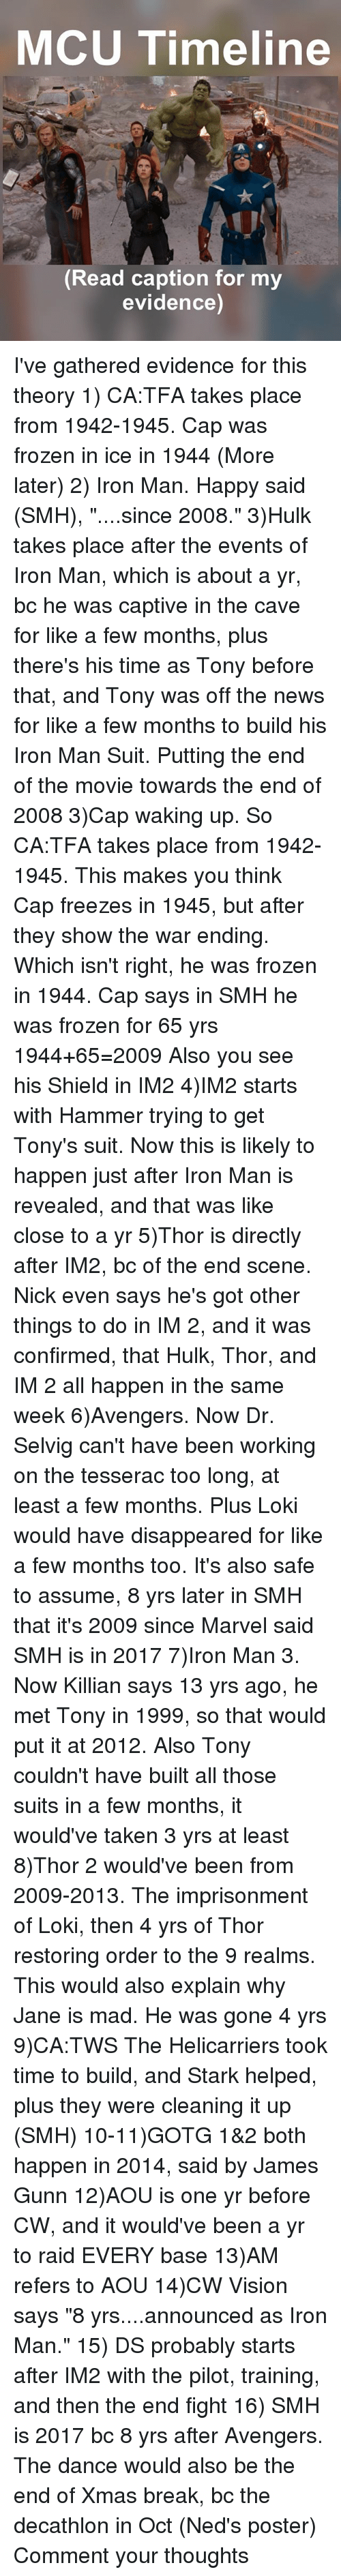 """the cave: MCU Timeline  A,  Read caption for my  evidence) I've gathered evidence for this theory 1) CA:TFA takes place from 1942-1945. Cap was frozen in ice in 1944 (More later) 2) Iron Man. Happy said (SMH), """"....since 2008."""" 3)Hulk takes place after the events of Iron Man, which is about a yr, bc he was captive in the cave for like a few months, plus there's his time as Tony before that, and Tony was off the news for like a few months to build his Iron Man Suit. Putting the end of the movie towards the end of 2008 3)Cap waking up. So CA:TFA takes place from 1942-1945. This makes you think Cap freezes in 1945, but after they show the war ending. Which isn't right, he was frozen in 1944. Cap says in SMH he was frozen for 65 yrs 1944+65=2009 Also you see his Shield in IM2 4)IM2 starts with Hammer trying to get Tony's suit. Now this is likely to happen just after Iron Man is revealed, and that was like close to a yr 5)Thor is directly after IM2, bc of the end scene. Nick even says he's got other things to do in IM 2, and it was confirmed, that Hulk, Thor, and IM 2 all happen in the same week 6)Avengers. Now Dr. Selvig can't have been working on the tesserac too long, at least a few months. Plus Loki would have disappeared for like a few months too. It's also safe to assume, 8 yrs later in SMH that it's 2009 since Marvel said SMH is in 2017 7)Iron Man 3. Now Killian says 13 yrs ago, he met Tony in 1999, so that would put it at 2012. Also Tony couldn't have built all those suits in a few months, it would've taken 3 yrs at least 8)Thor 2 would've been from 2009-2013. The imprisonment of Loki, then 4 yrs of Thor restoring order to the 9 realms. This would also explain why Jane is mad. He was gone 4 yrs 9)CA:TWS The Helicarriers took time to build, and Stark helped, plus they were cleaning it up (SMH) 10-11)GOTG 1&2 both happen in 2014, said by James Gunn 12)AOU is one yr before CW, and it would've been a yr to raid EVERY base 13)AM refers to AOU 14)CW Vision says """"8 yrs."""